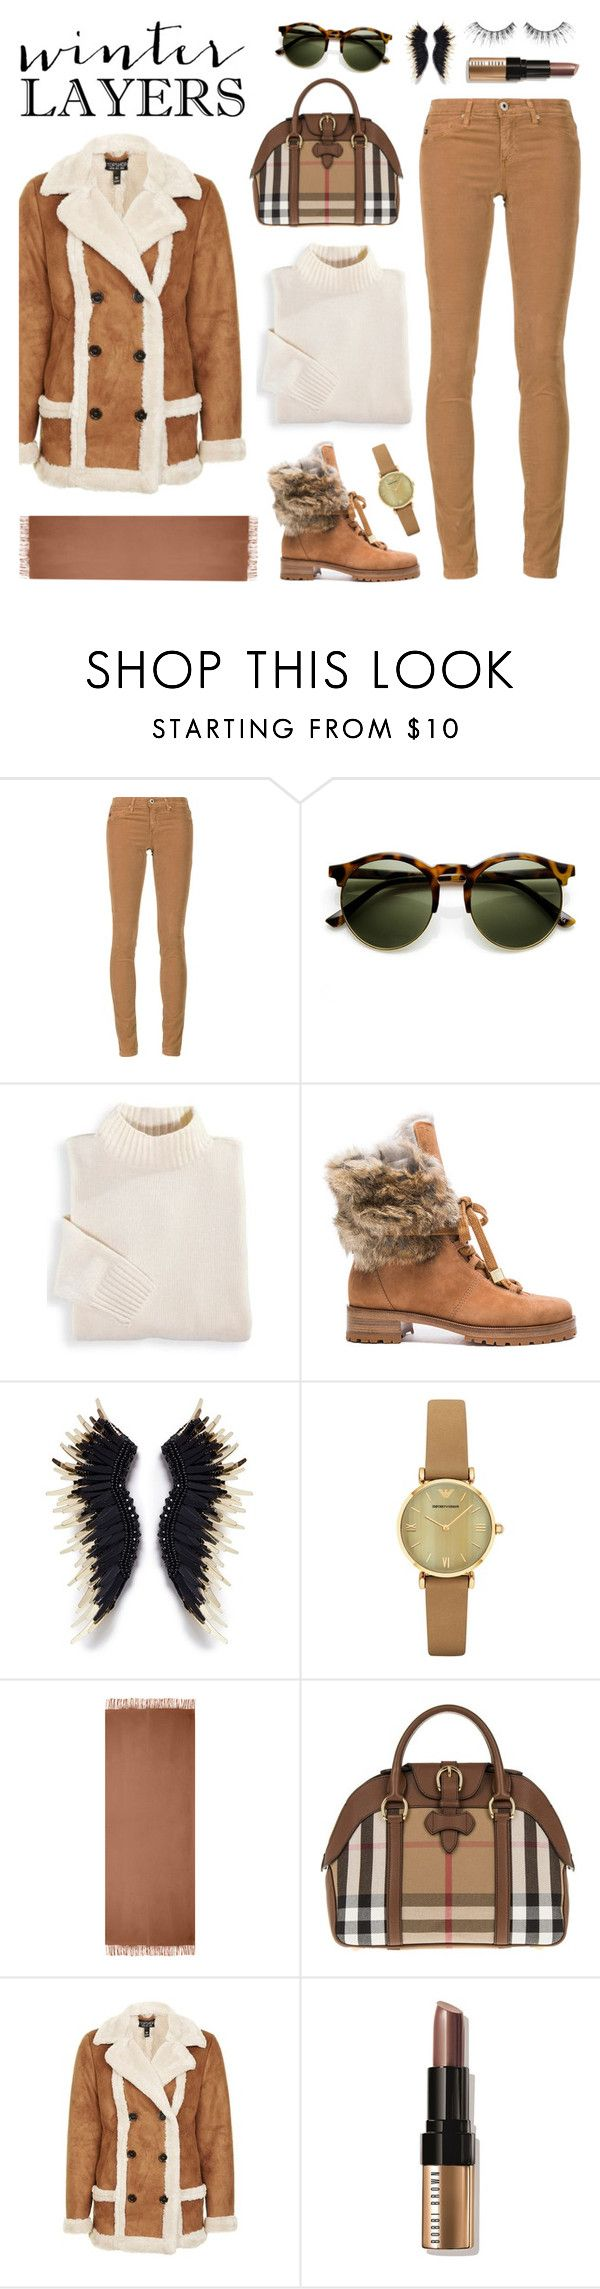 """""""Winter Layers"""" by lgb321 ❤ liked on Polyvore featuring AG Adriano Goldschmied, Blair, Alexandre Birman, Mignonne Gavigan, Emporio Armani, Acne Studios, Burberry, Topshop, Bobbi Brown Cosmetics and MAKE UP FOR EVER"""